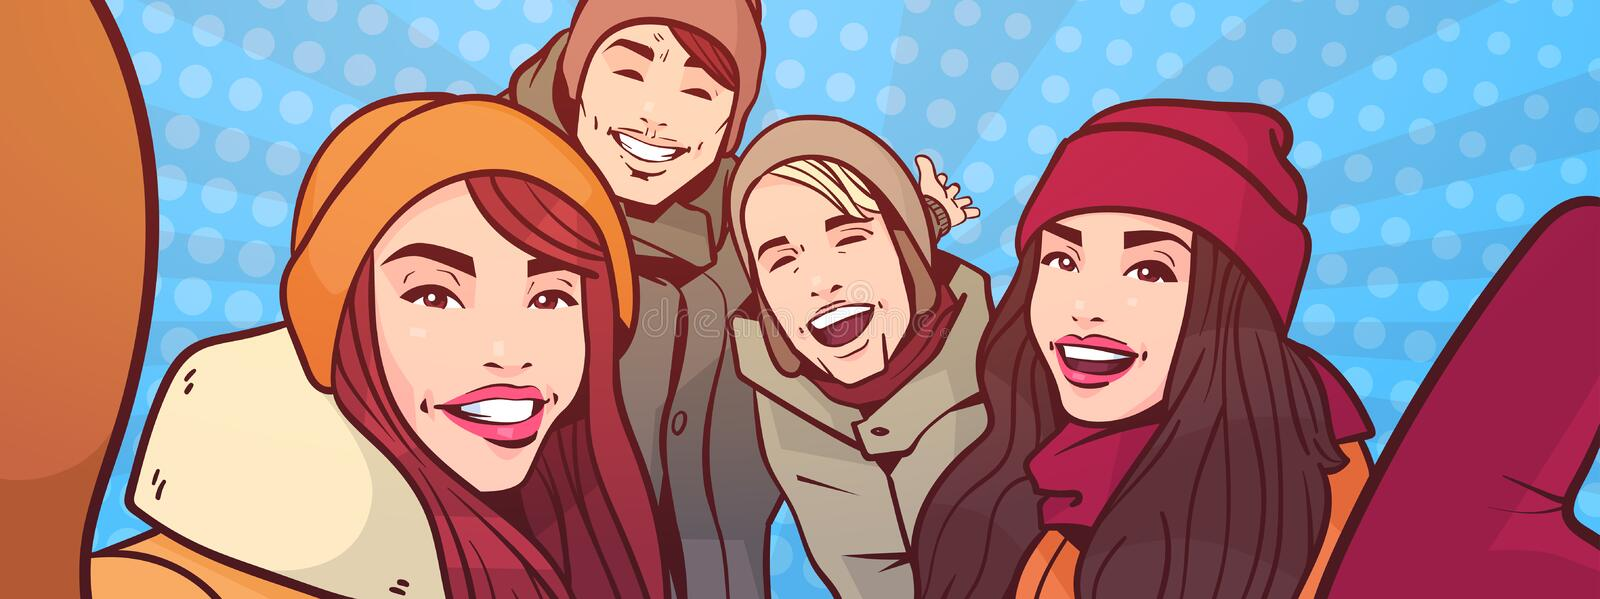 Young People Take Selfie Photo Over Colorful Retro Style Background Mix Race Men And Women Group Happy Smiling Make Self royalty free illustration